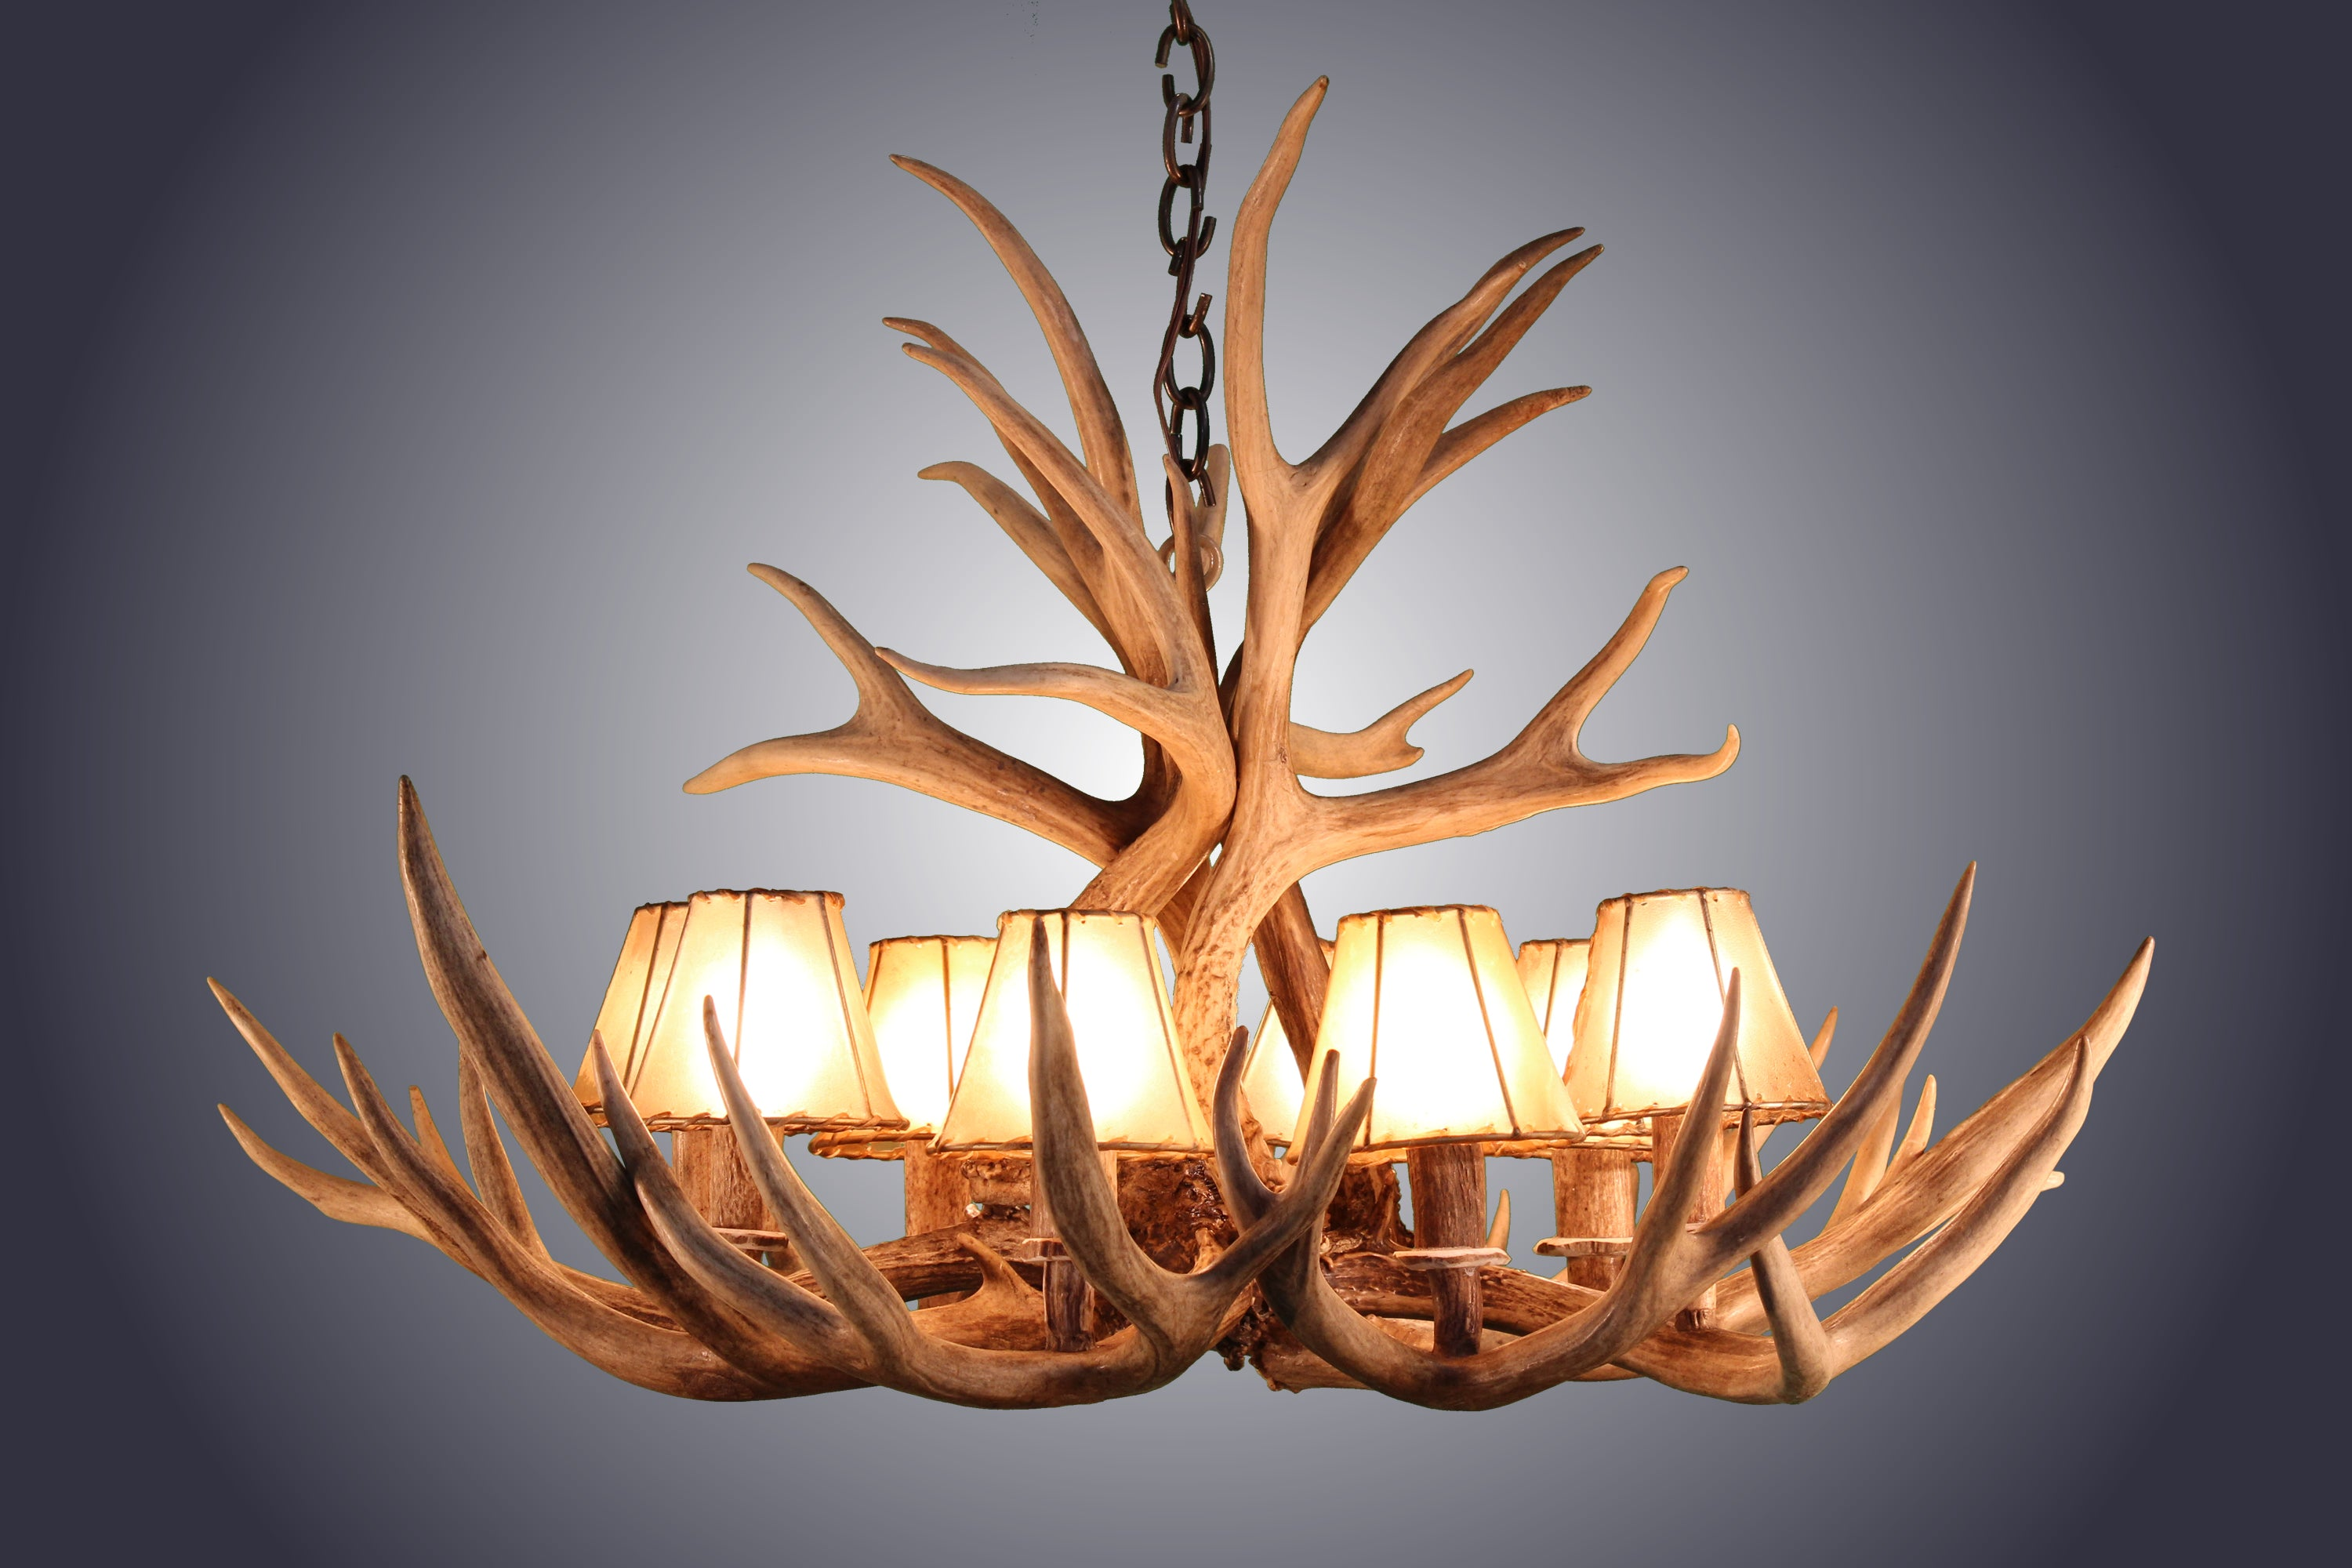 New Deer Antler Chandelier Design Interior